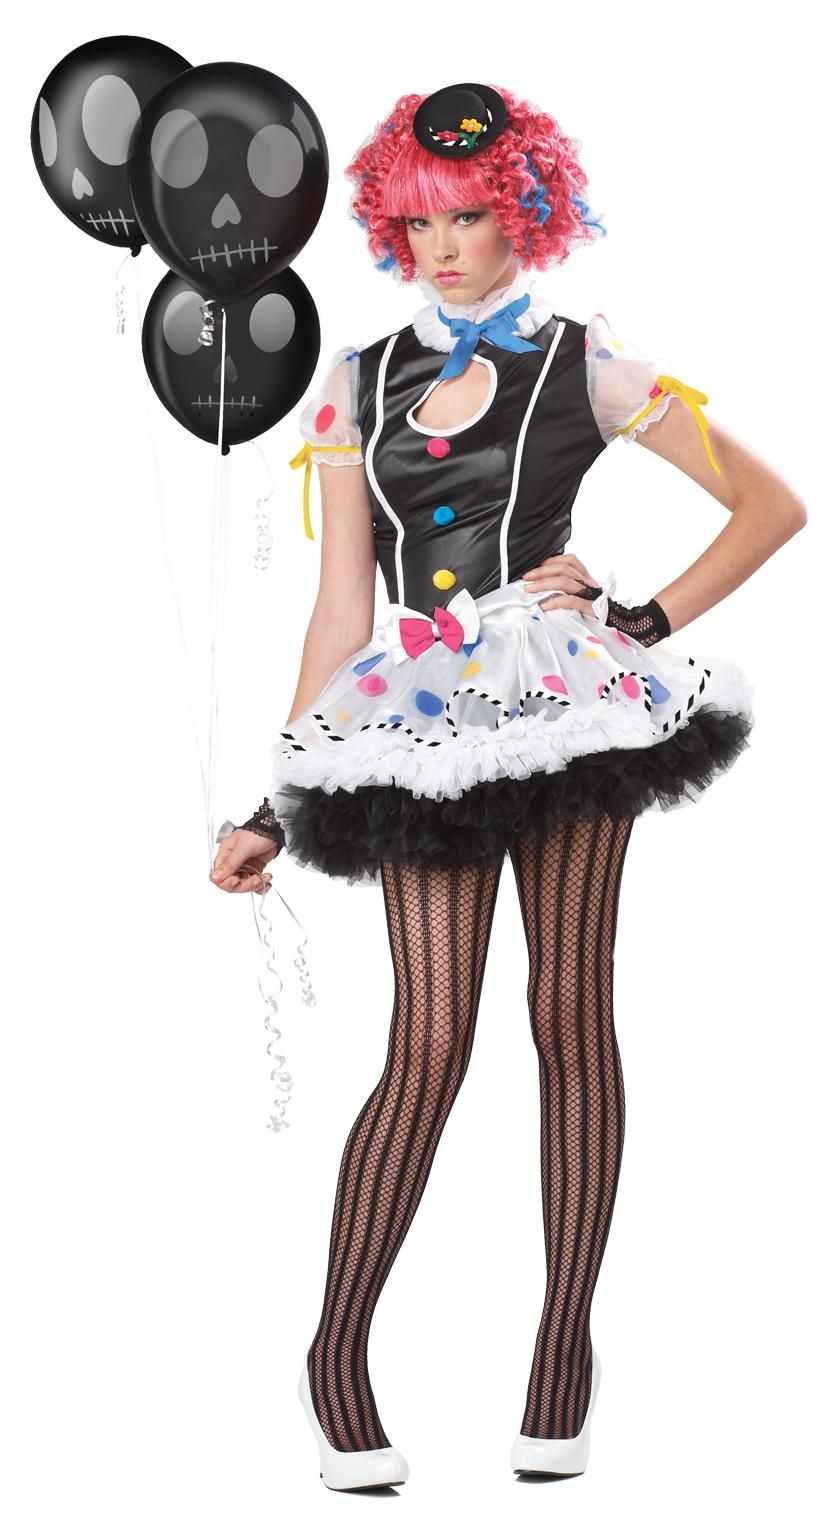 sassie the clown katy perry candy teen girls costume - Girl Clown Halloween Costumes